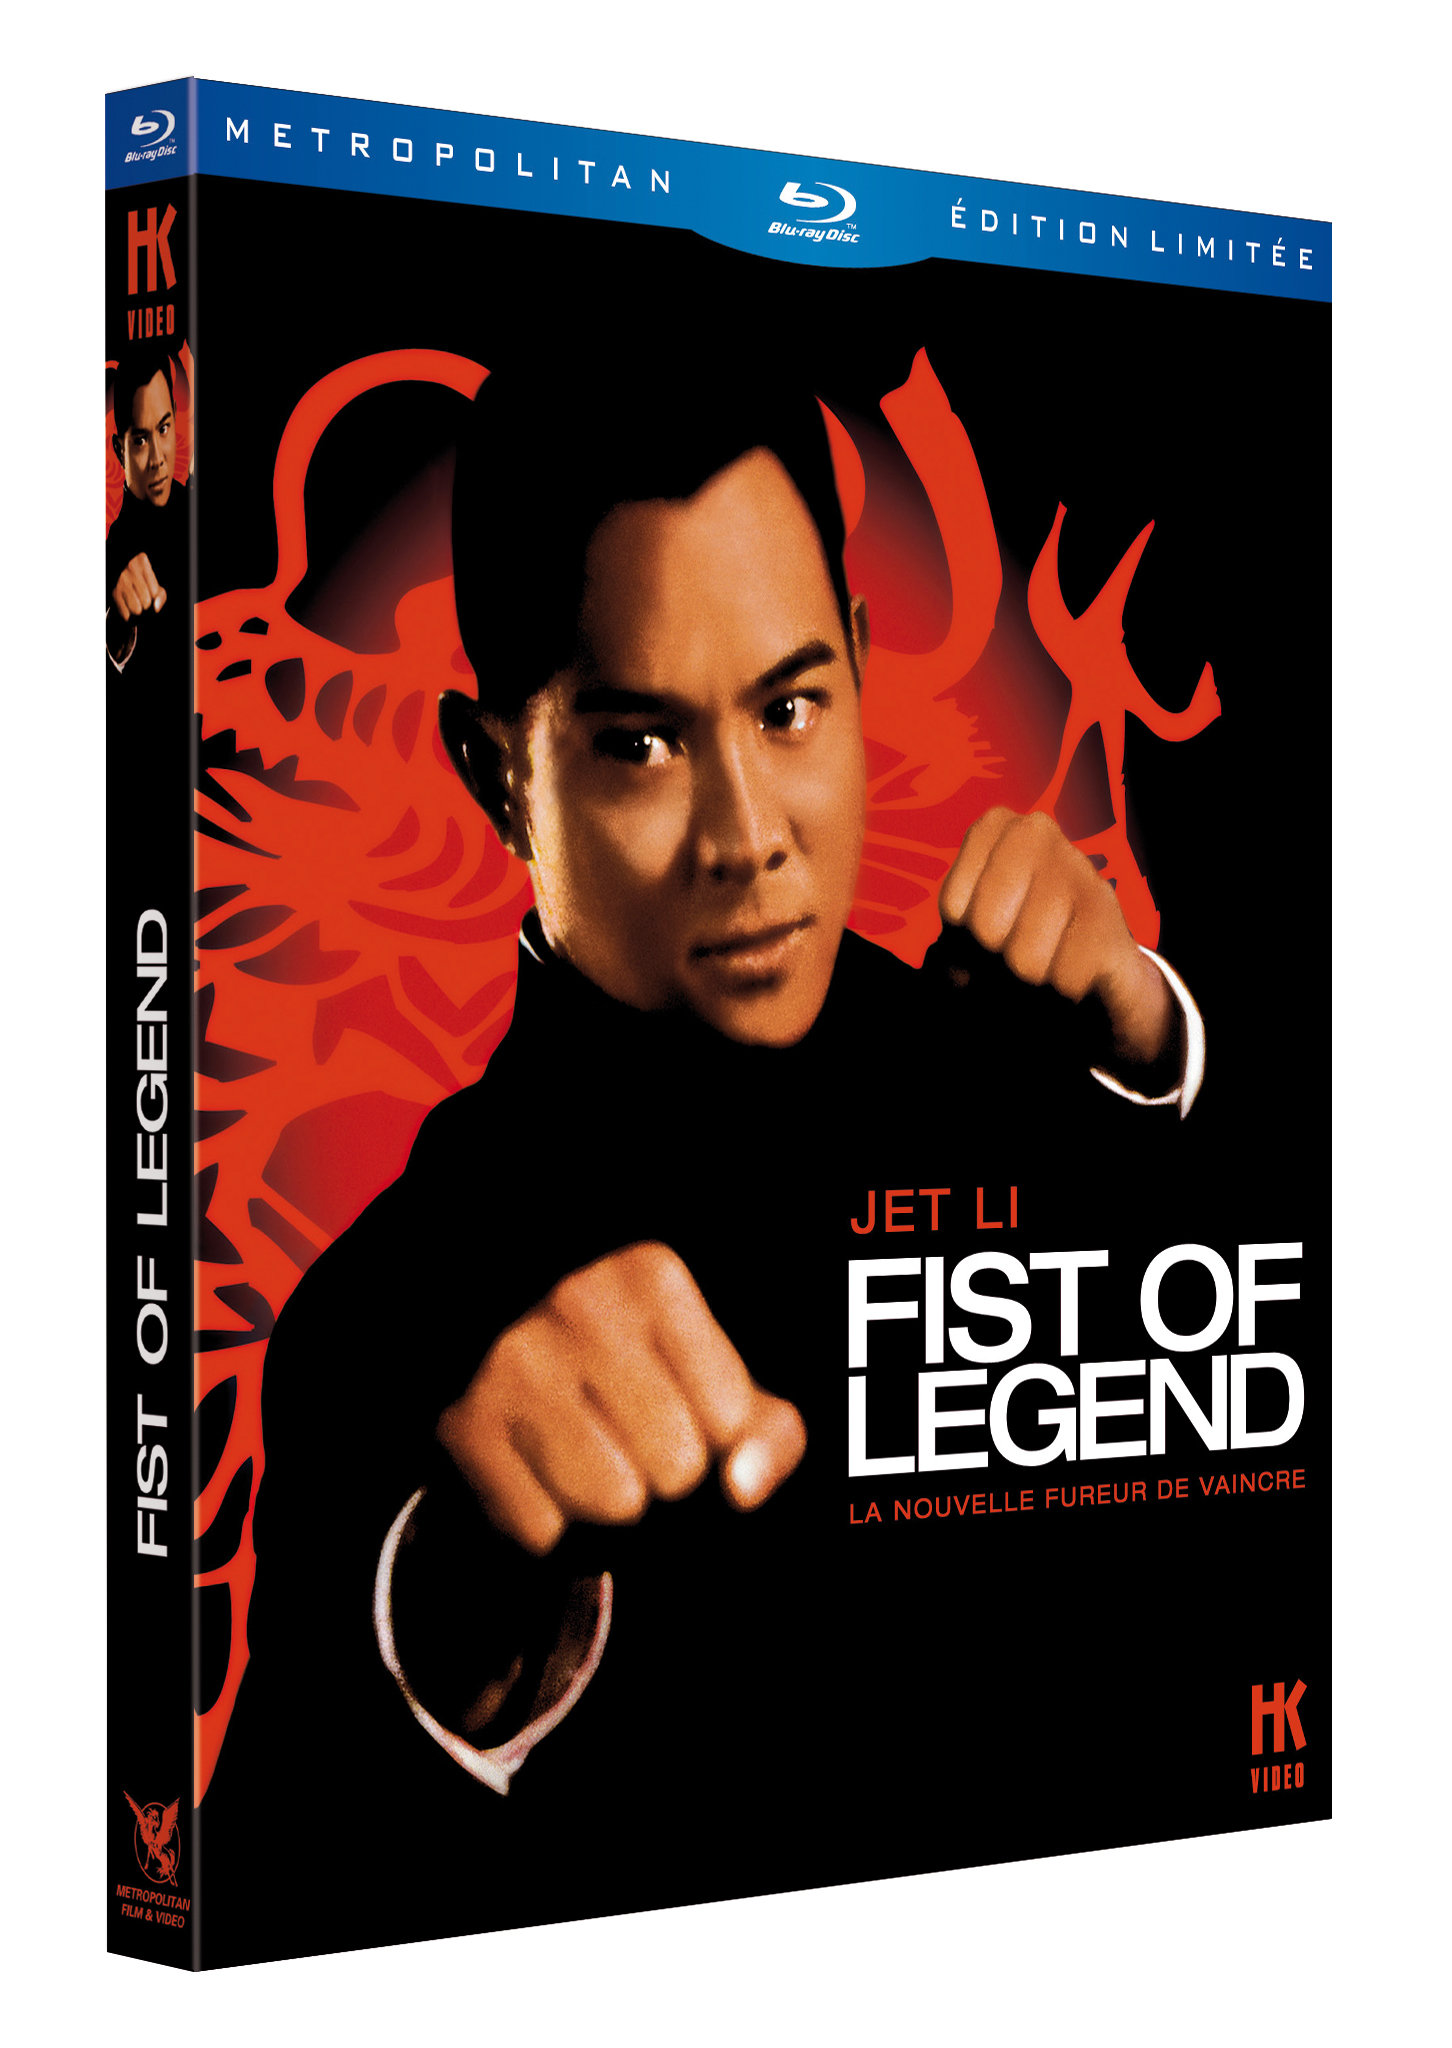 Fist of legend - La nouvelle fureur de vaincre  [FRENCH] BRRip AC3